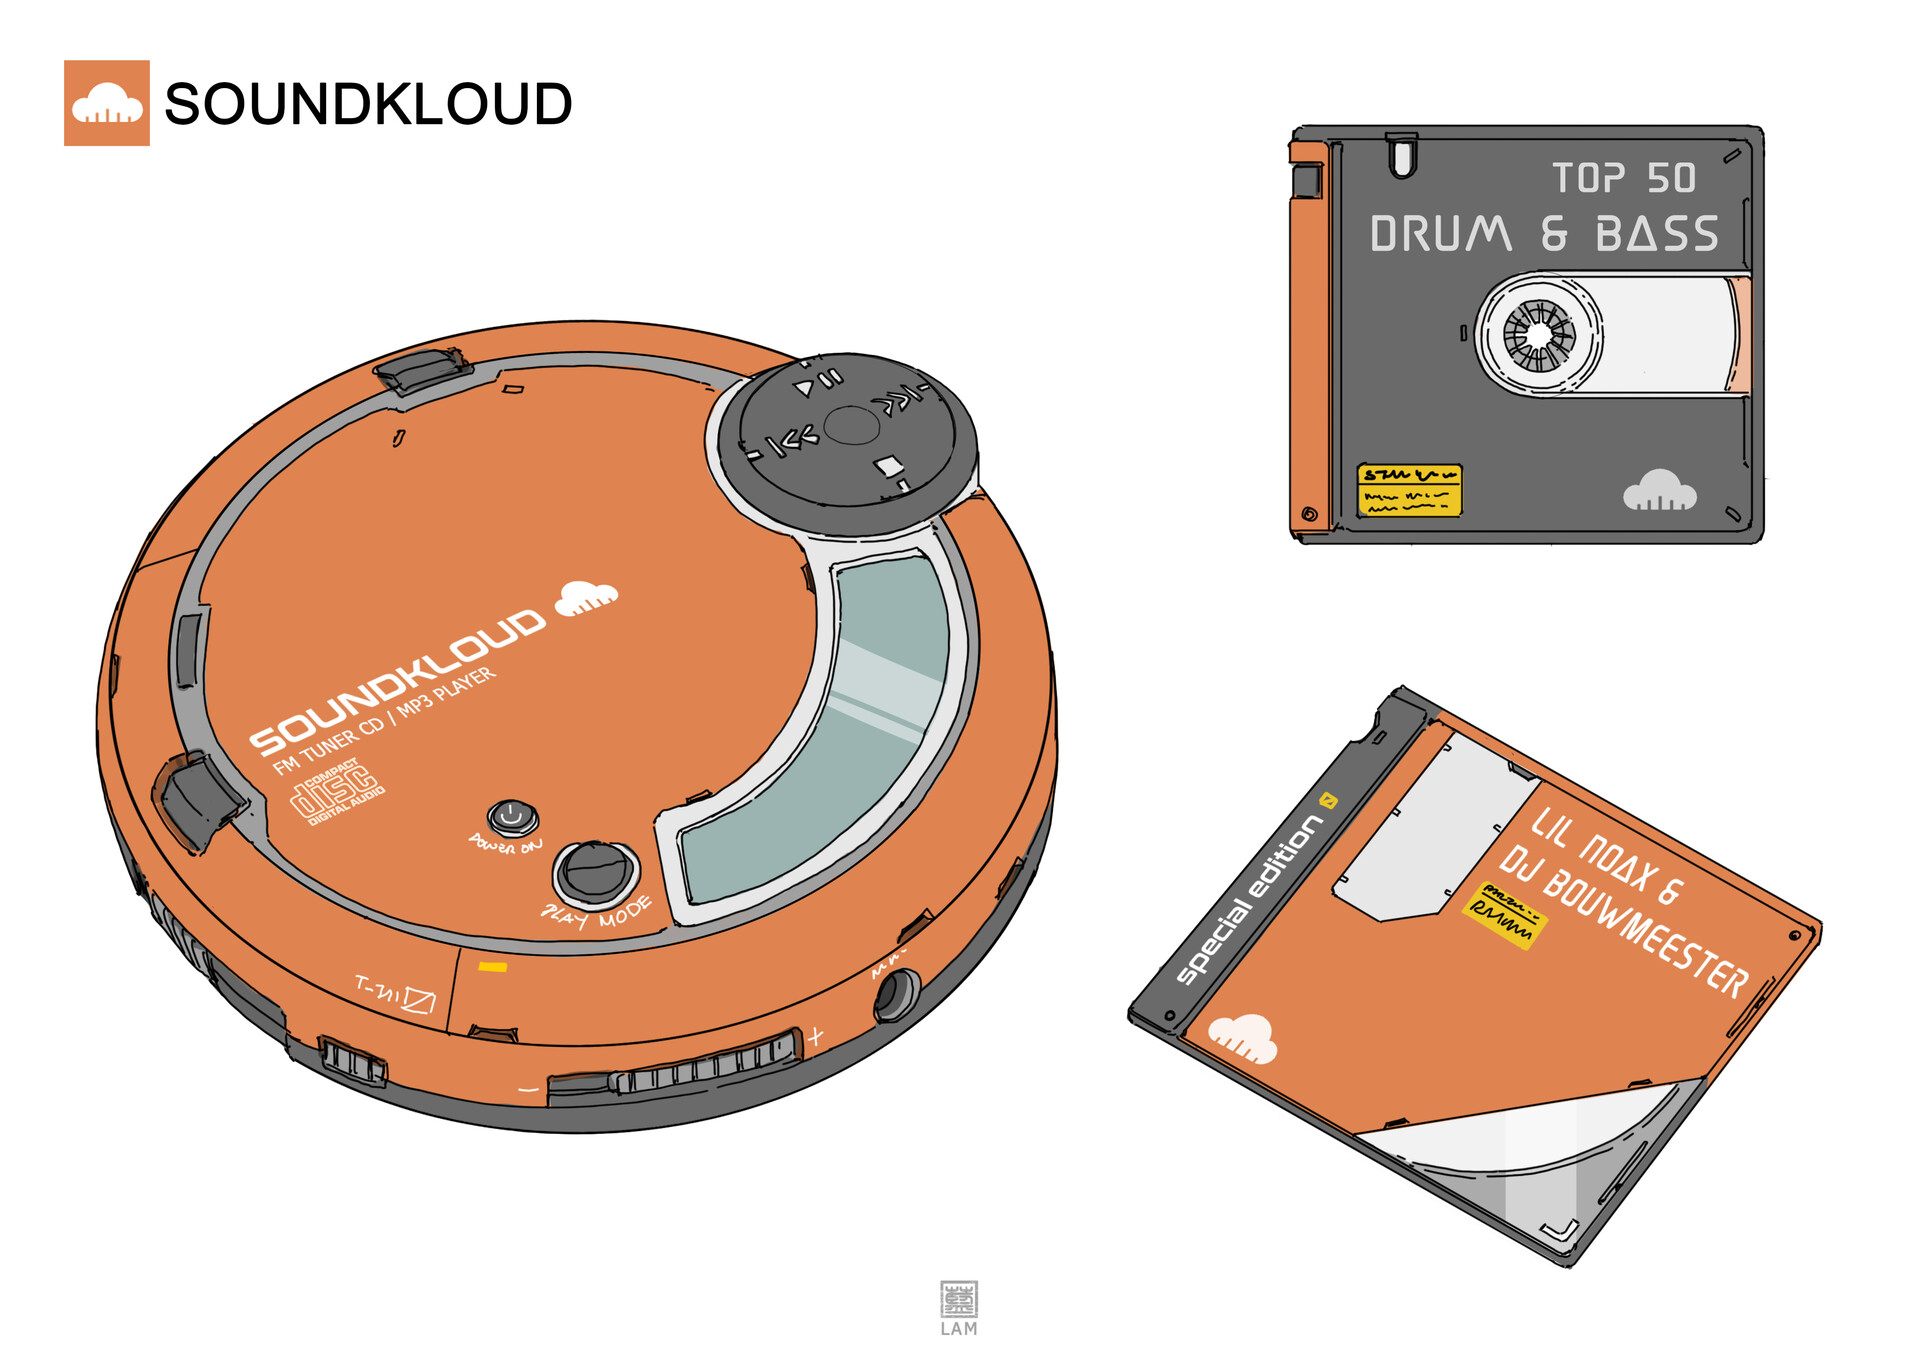 soundcloud / cd player